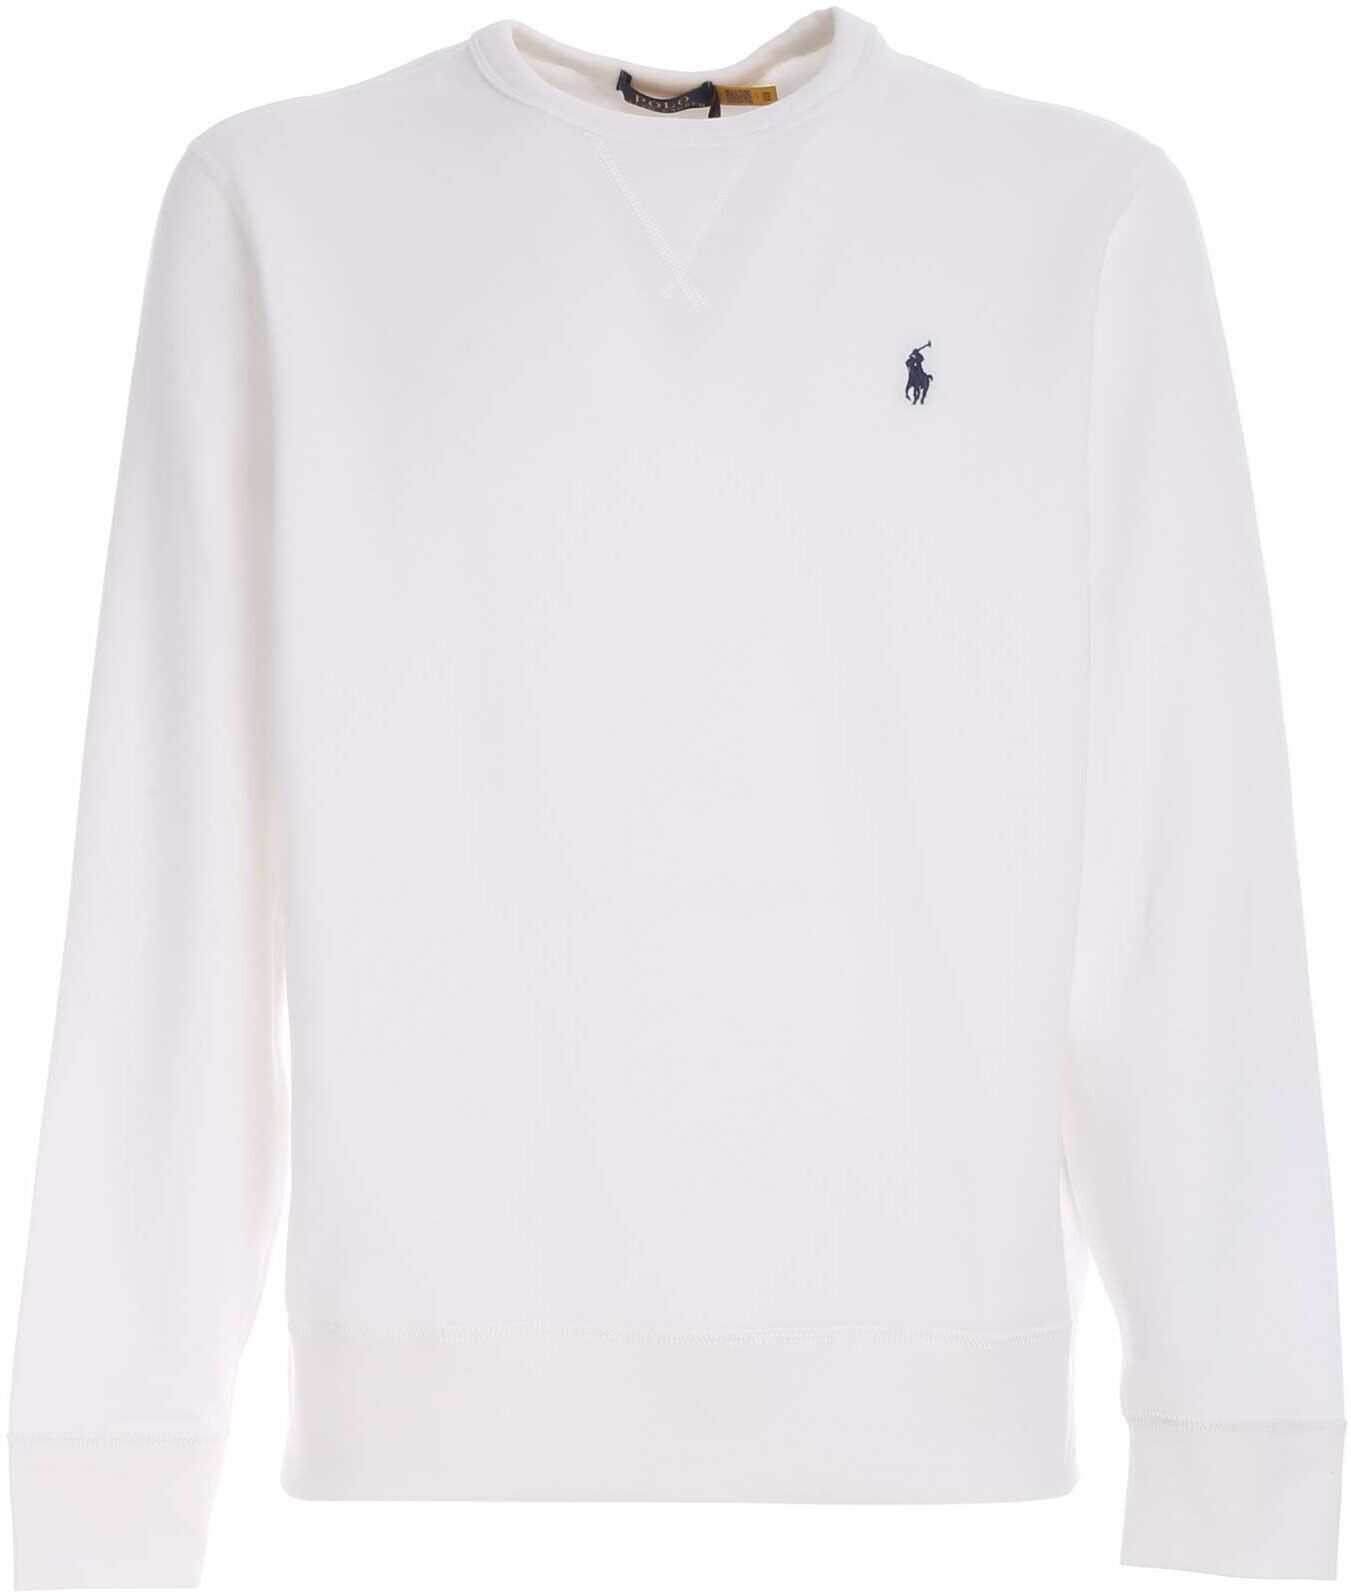 Ralph Lauren Sweatshirt In White With Blue Logo Embroidery White imagine